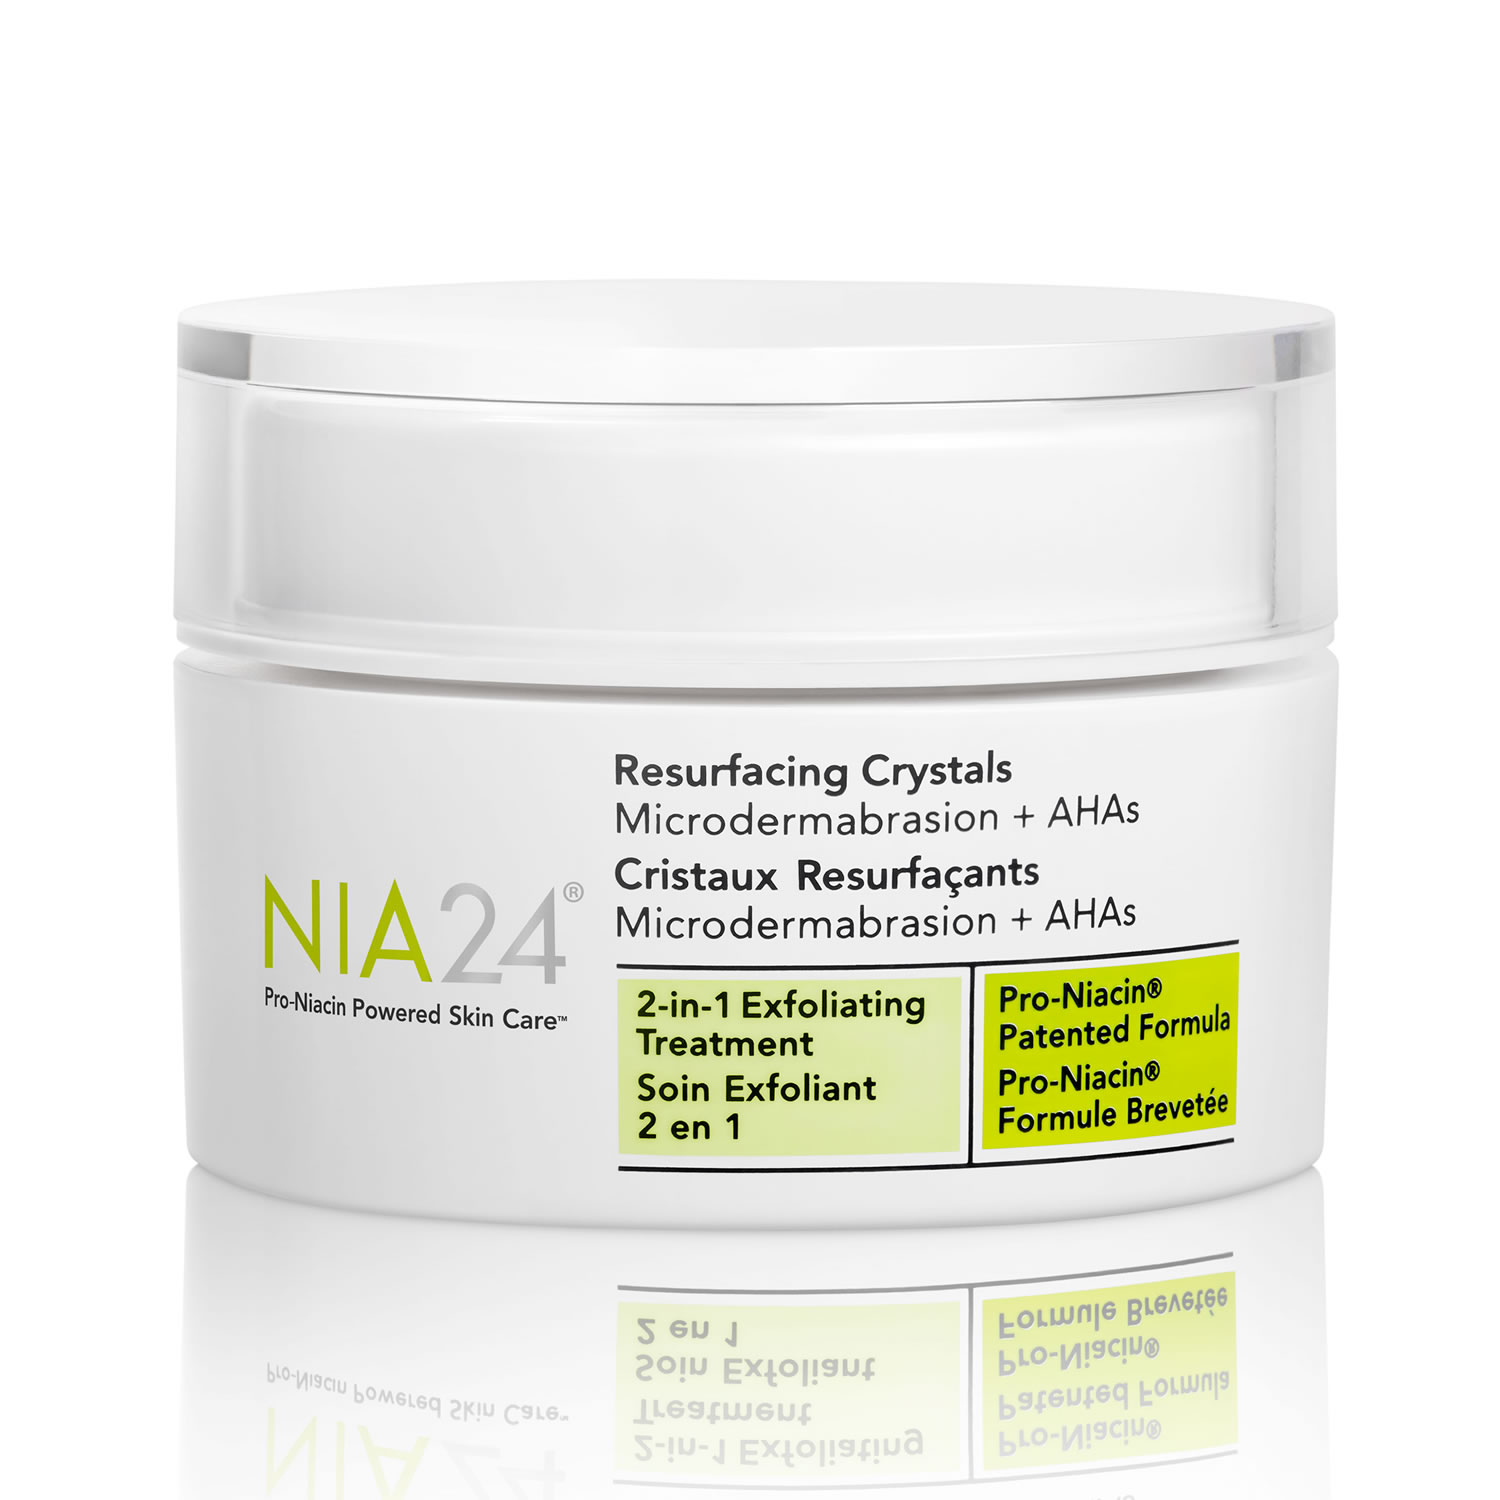 NIA24 Resurfacing Crystals 2-In-1 Exfoliating Treatment